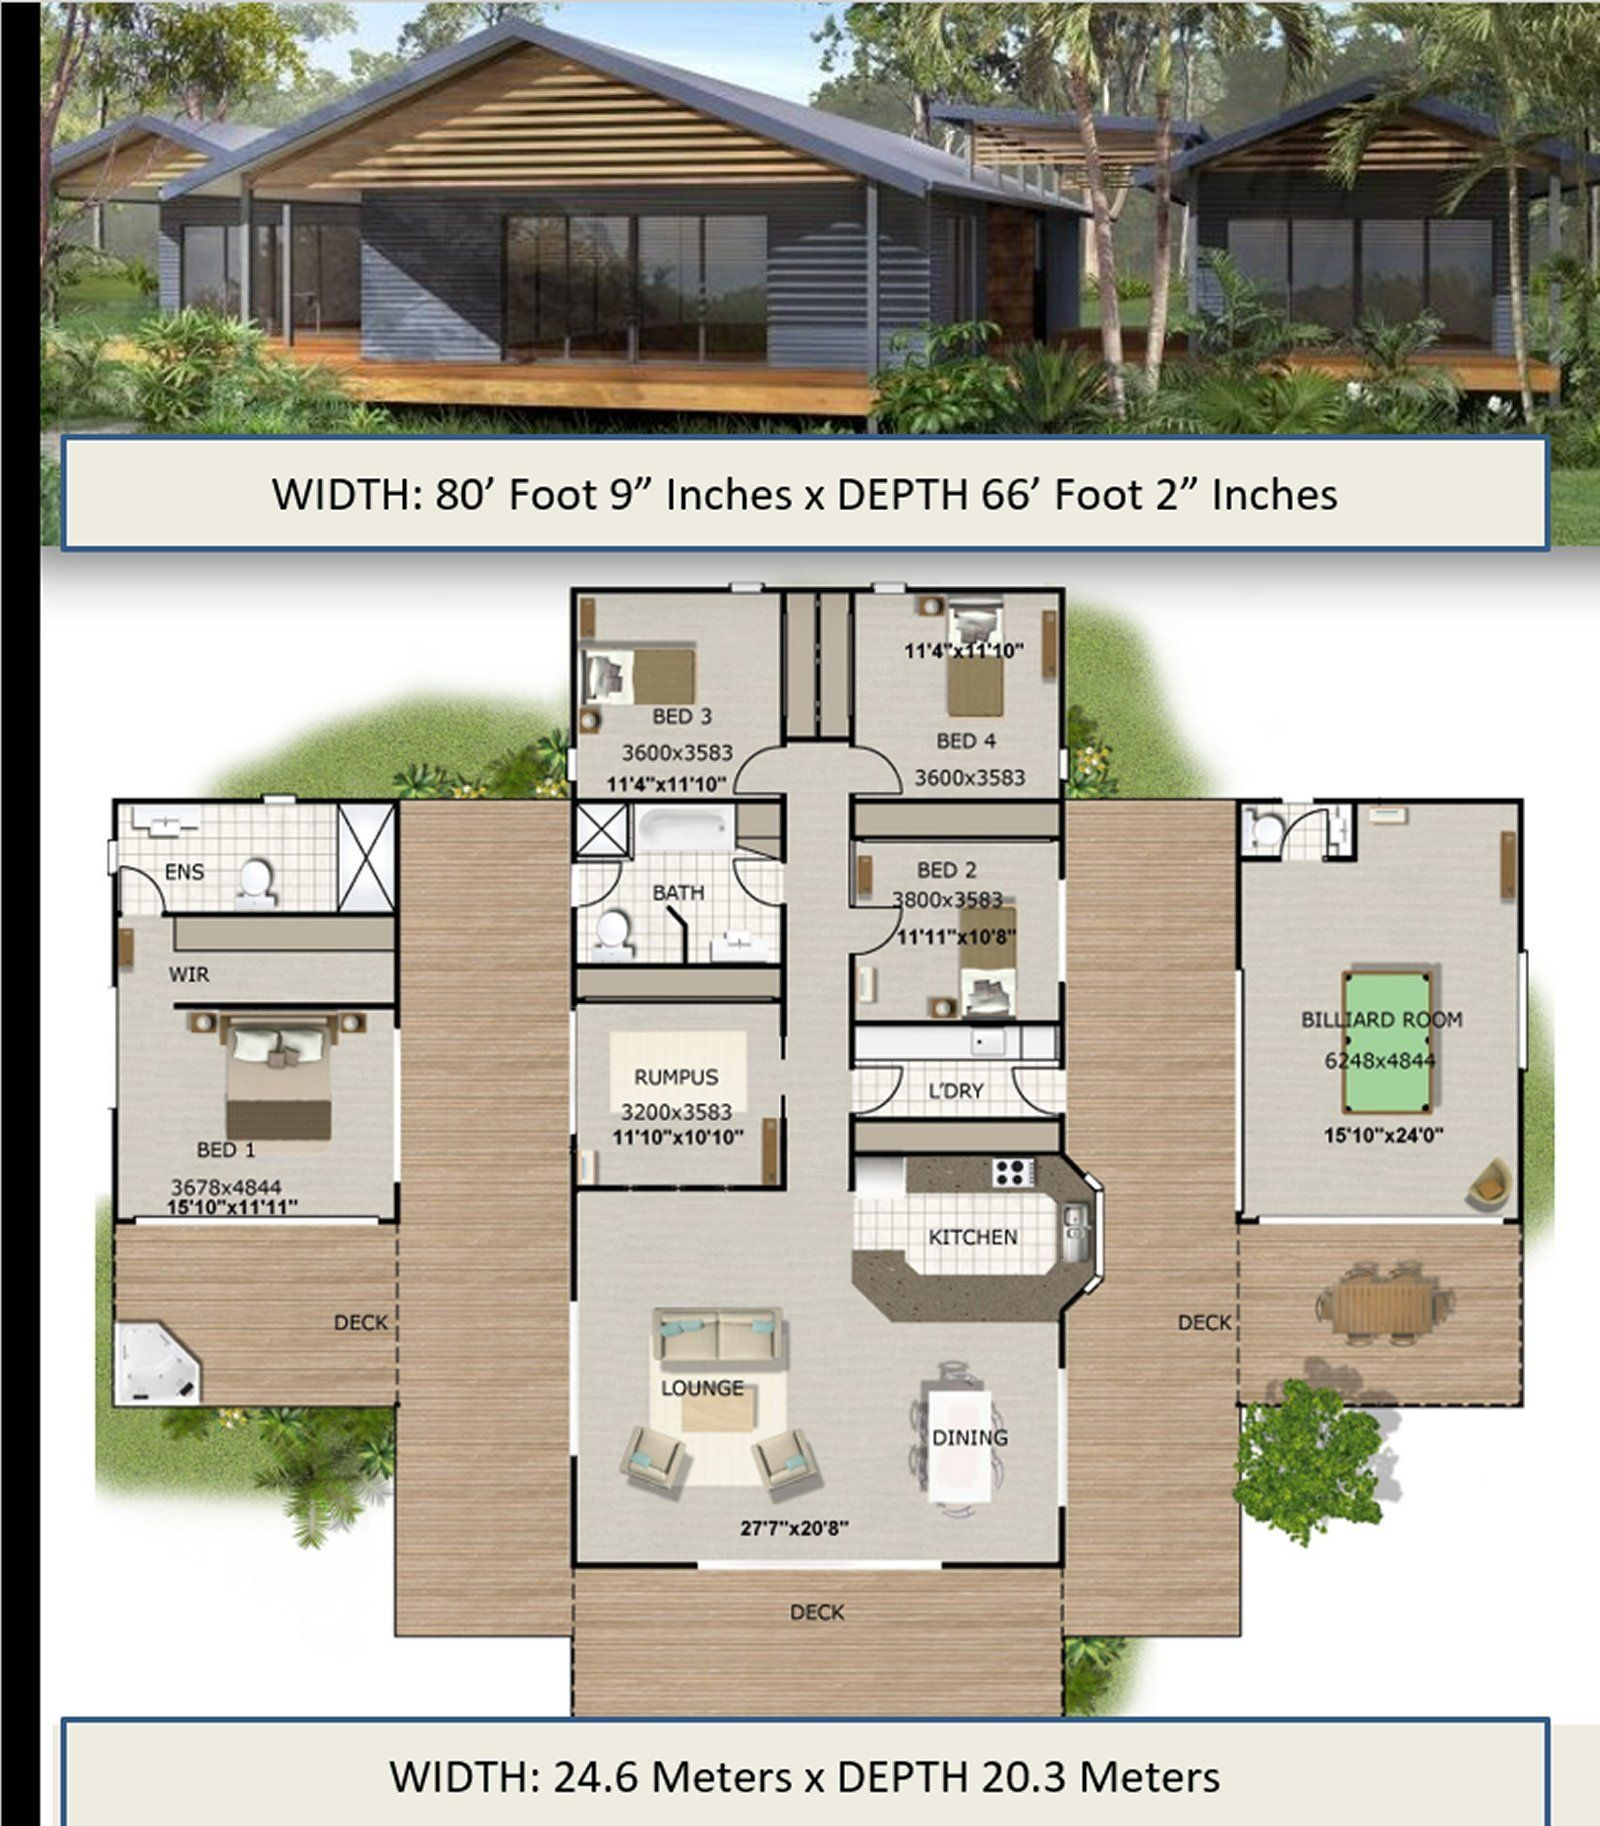 Pavilion Style Home Design 4 Or 5 Bedrooms 2 1 2 Bathrooms Etsy Modern House Plans House Plans House Design